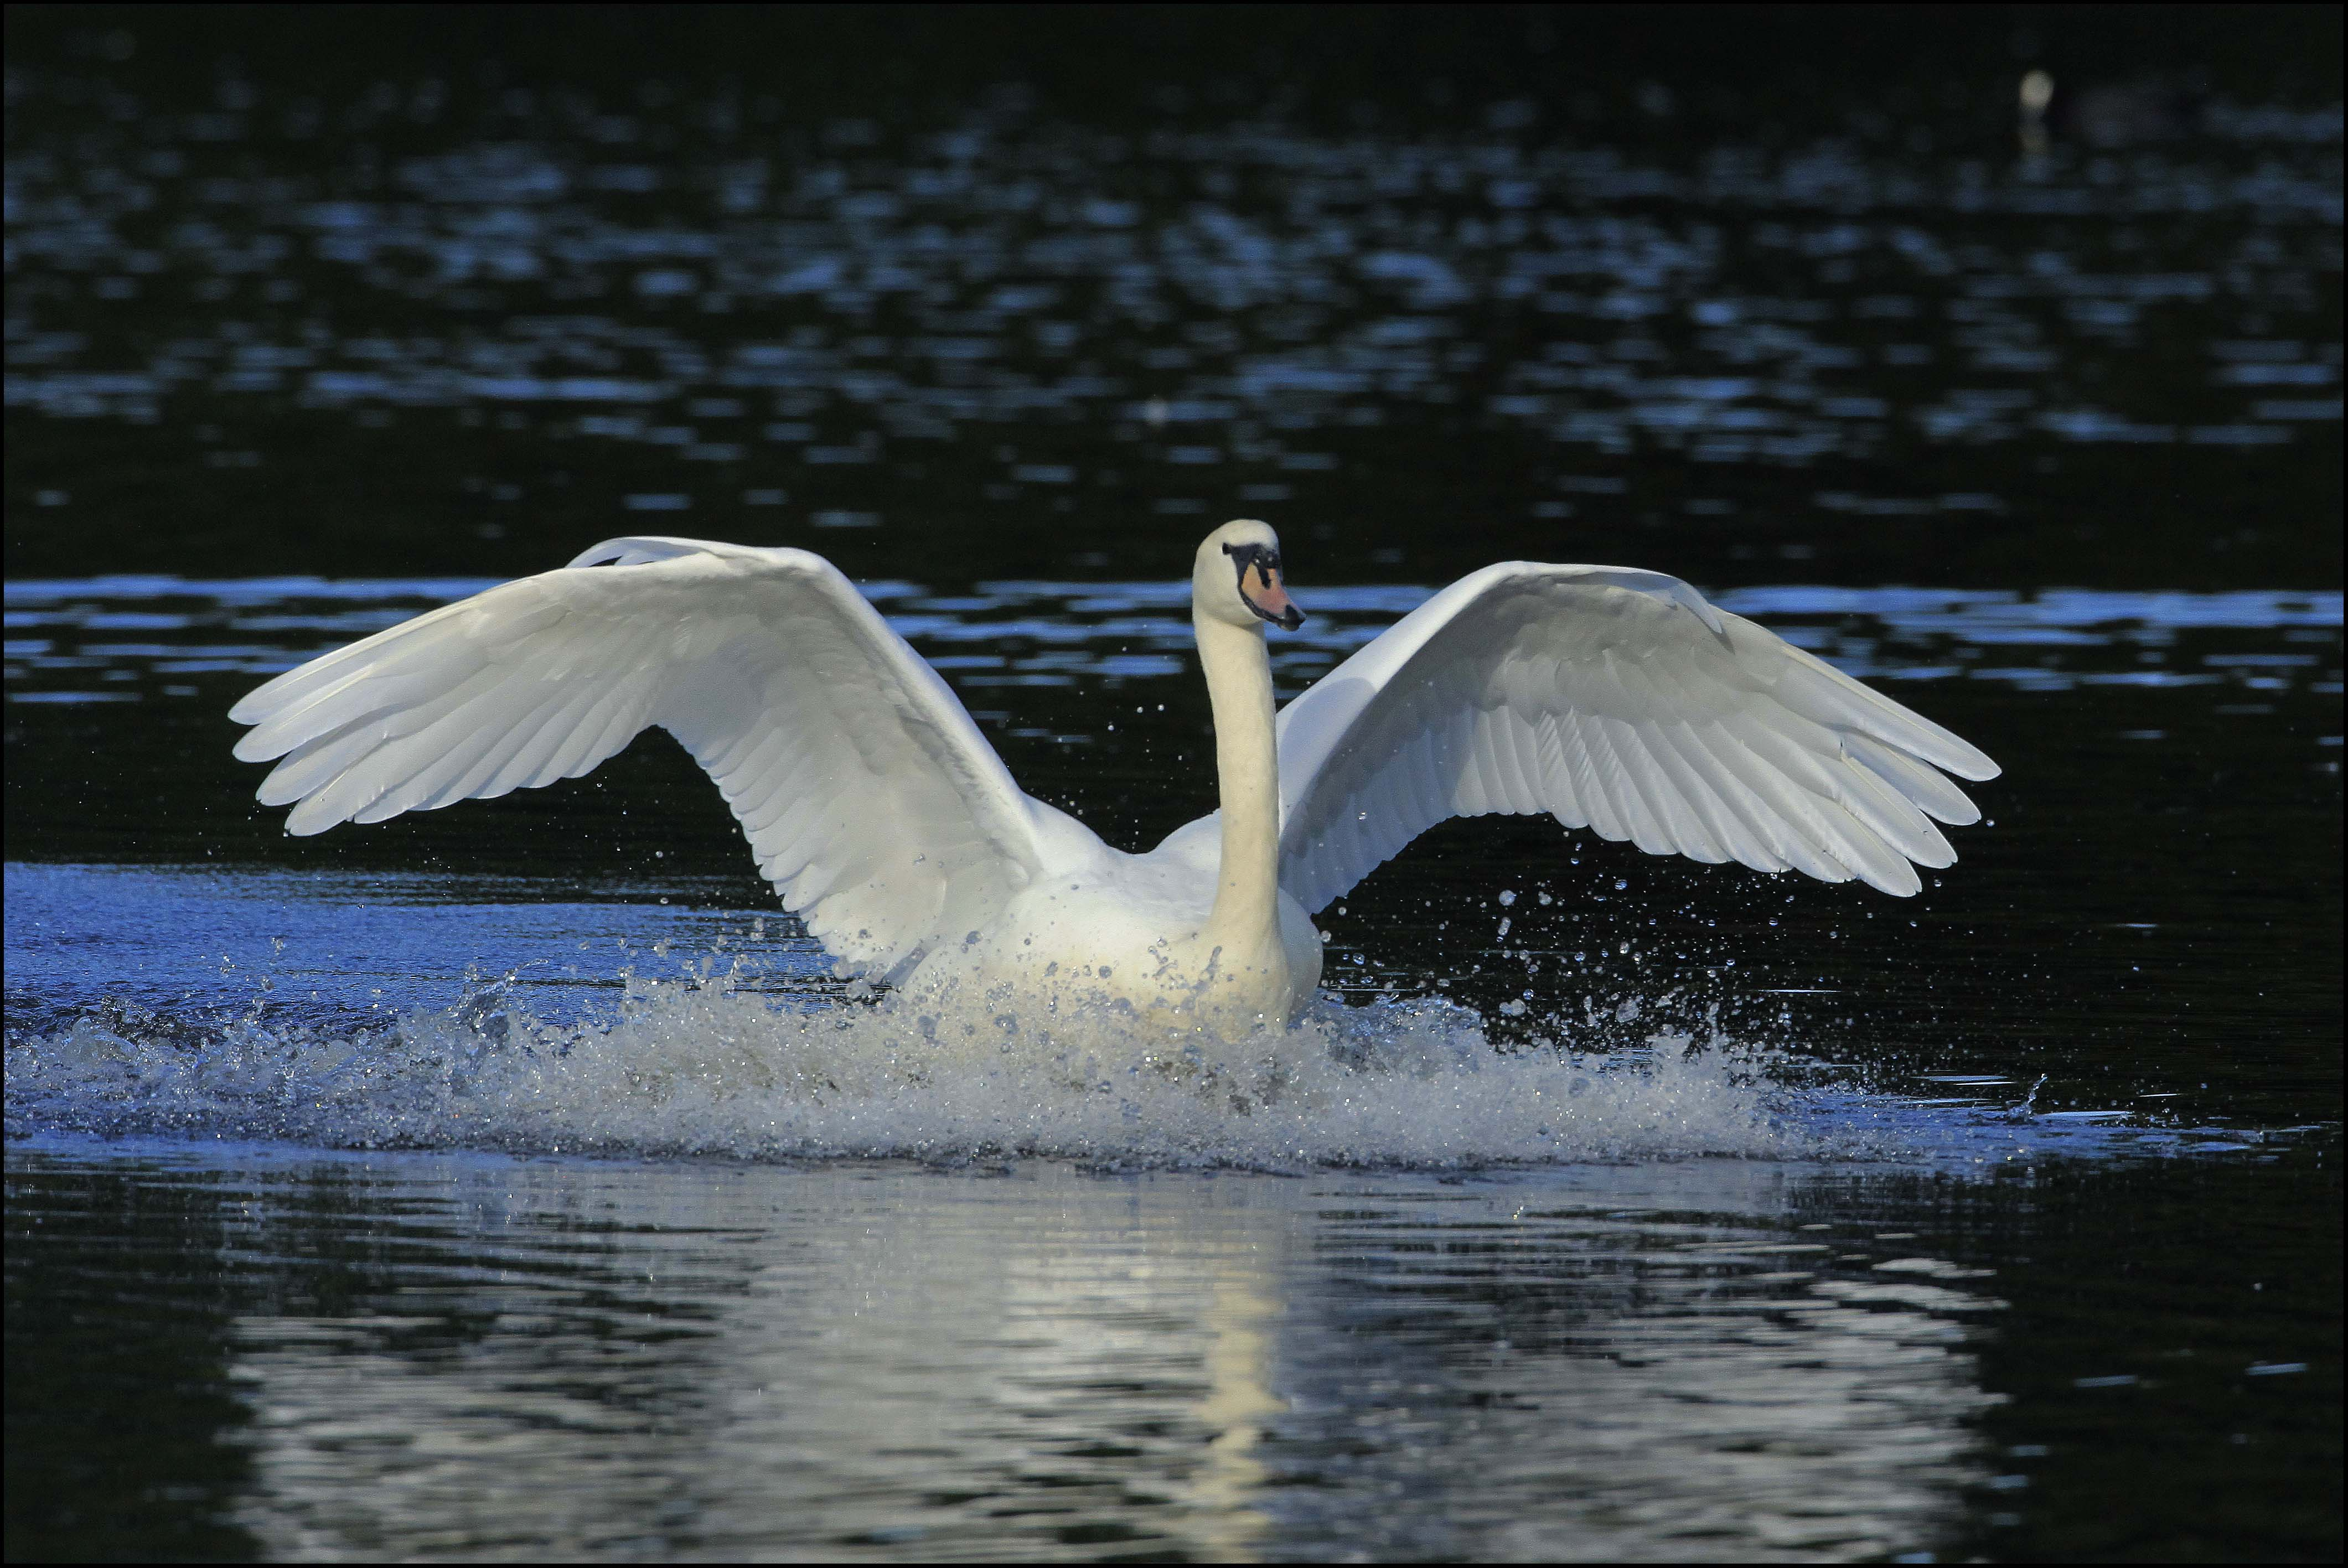 They certainly are elegant creatures we are lucky to have them at